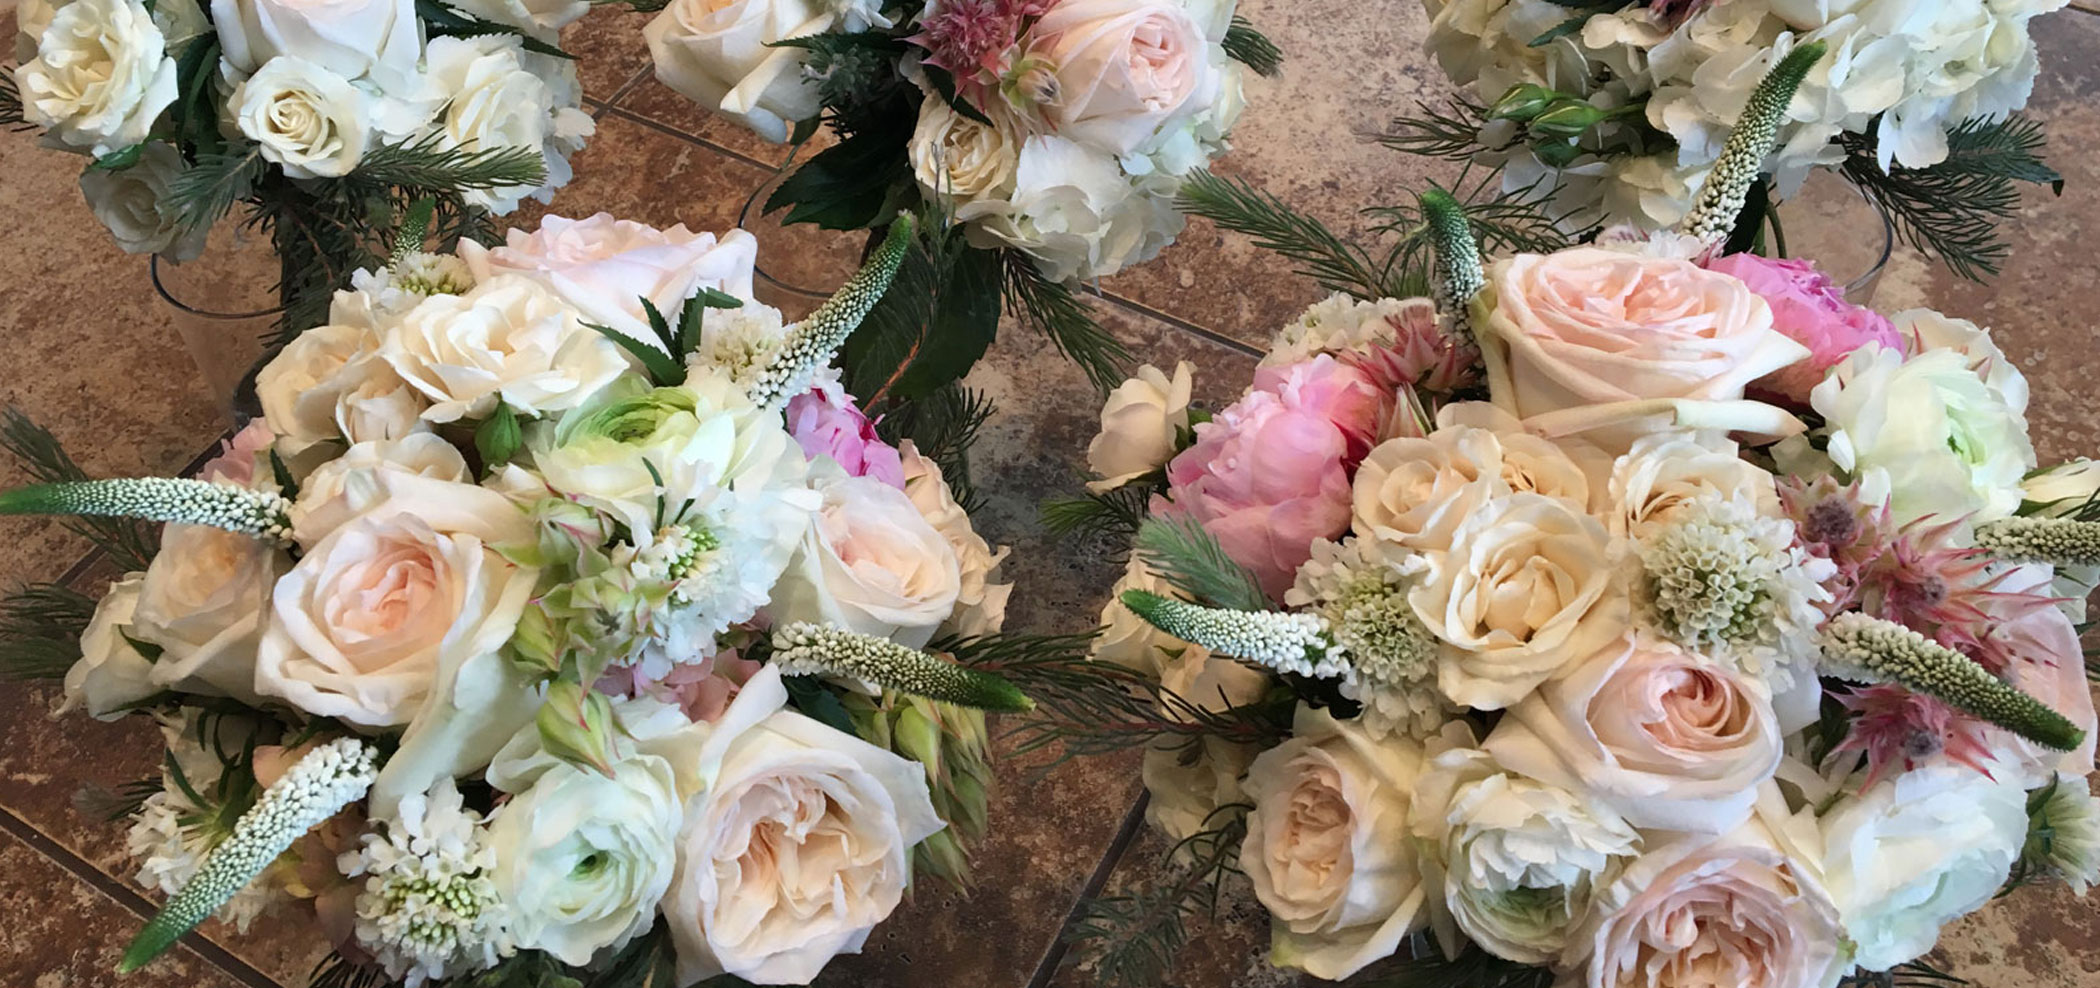 How to save on wedding flowers diy denver flowers discount wedding flowers izmirmasajfo